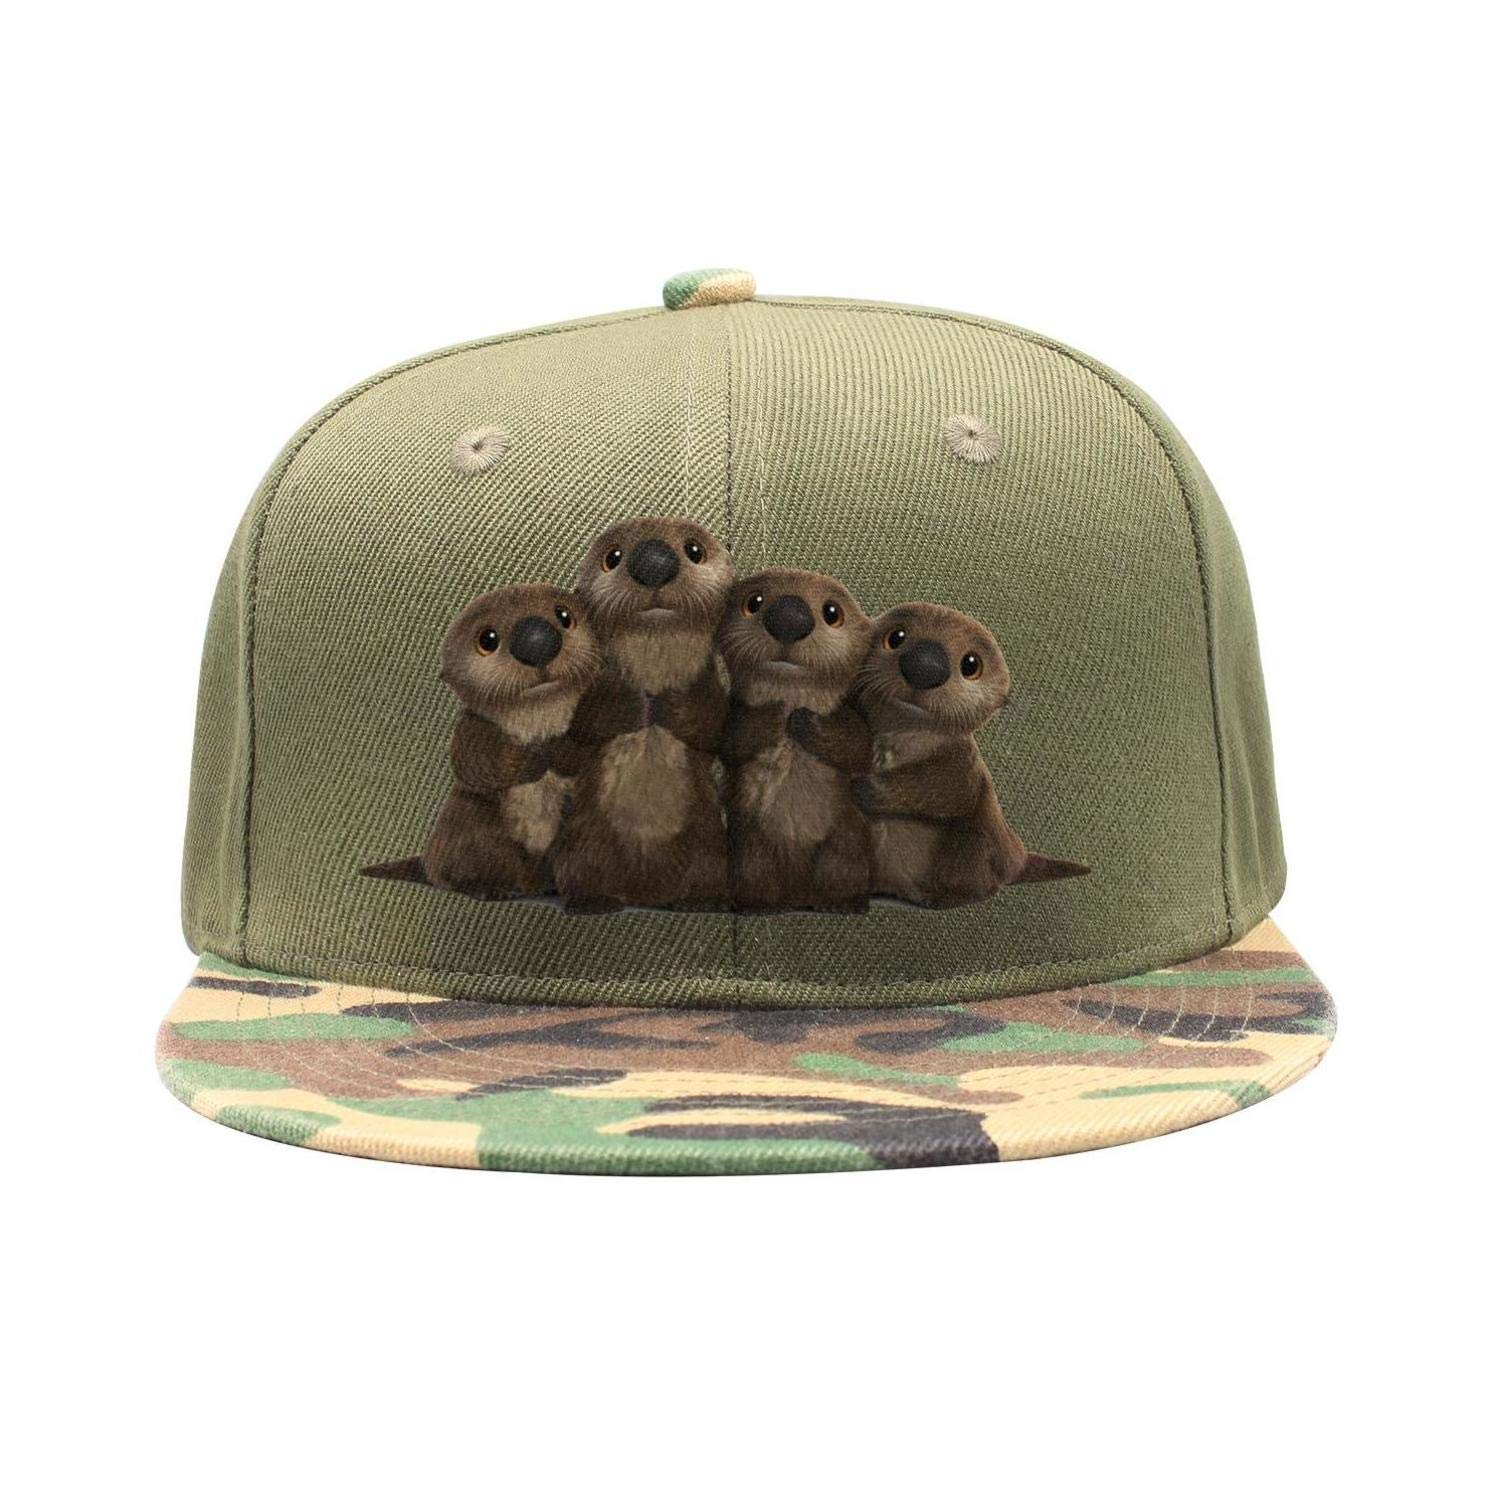 Unisex Hat + Baseball Cap + Dad Hat + Baseball Hat - Cute Sea Otters Stylish